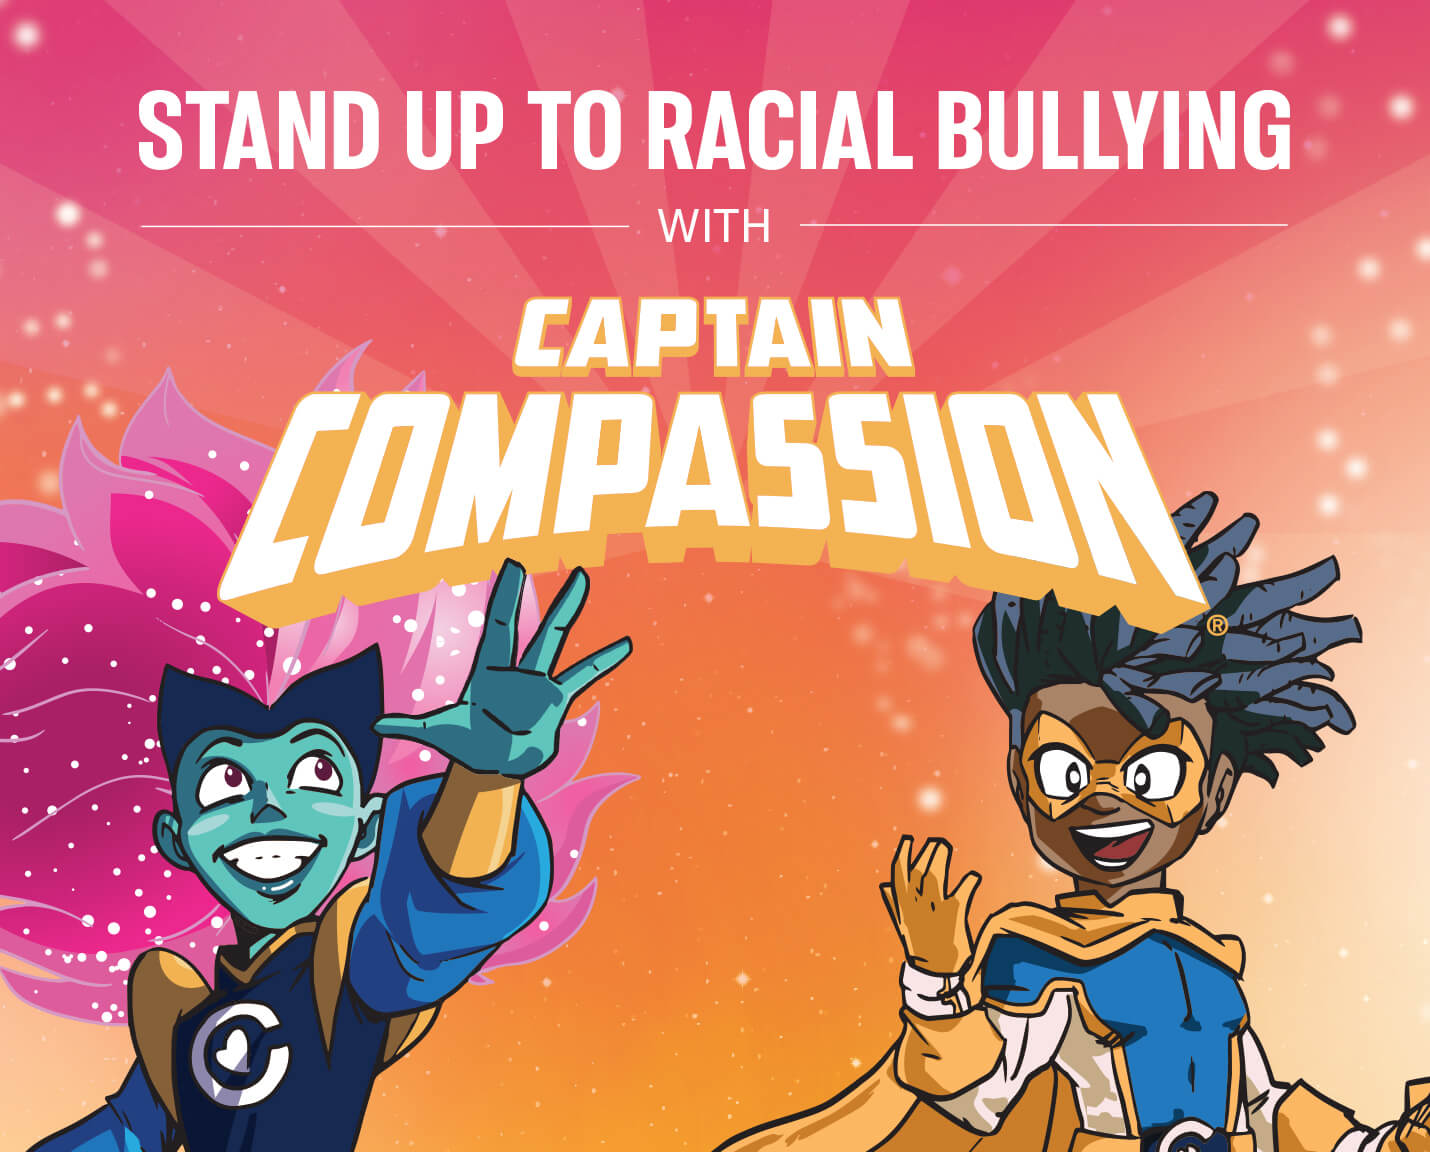 stand up to racial bullying with captain compassion